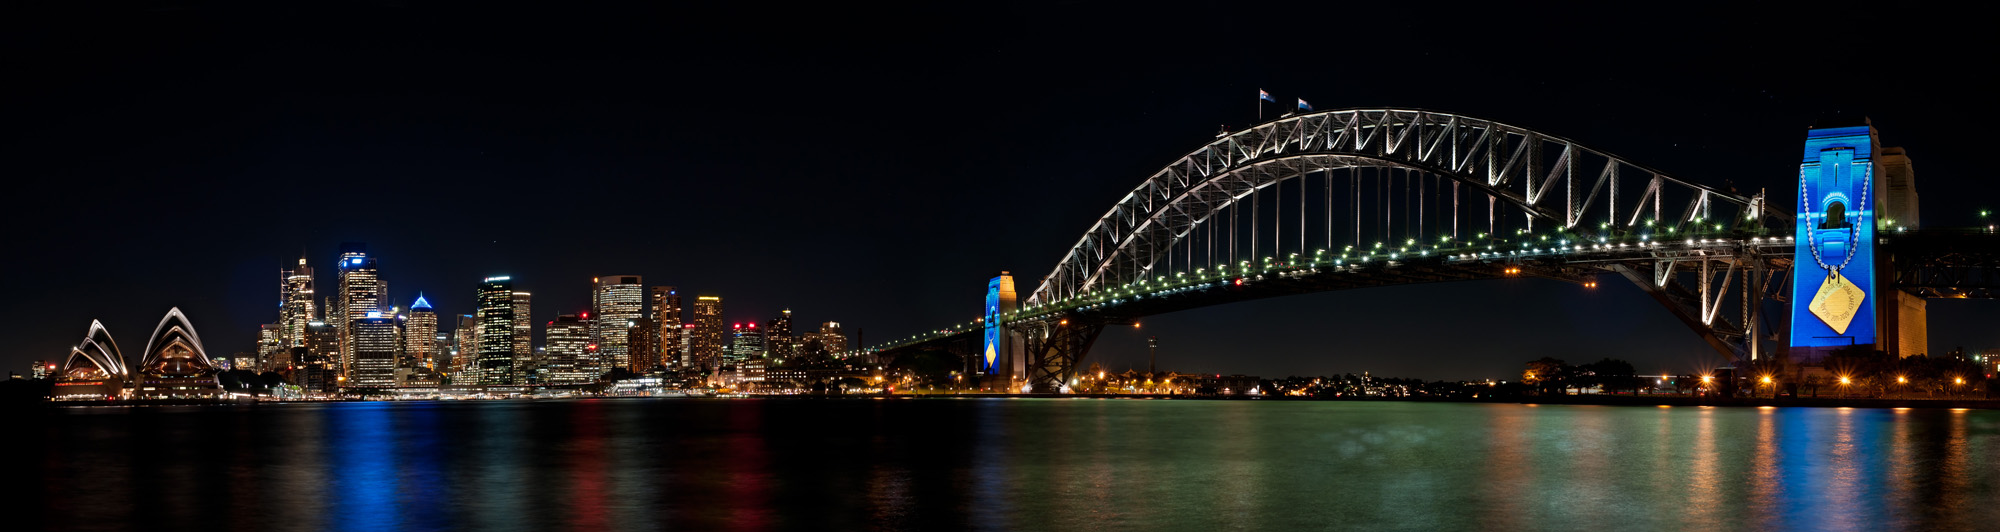 <b><font>Sydney | Australia</font></b> Lighting installation on the Harbour Bridge for Road Safety decade